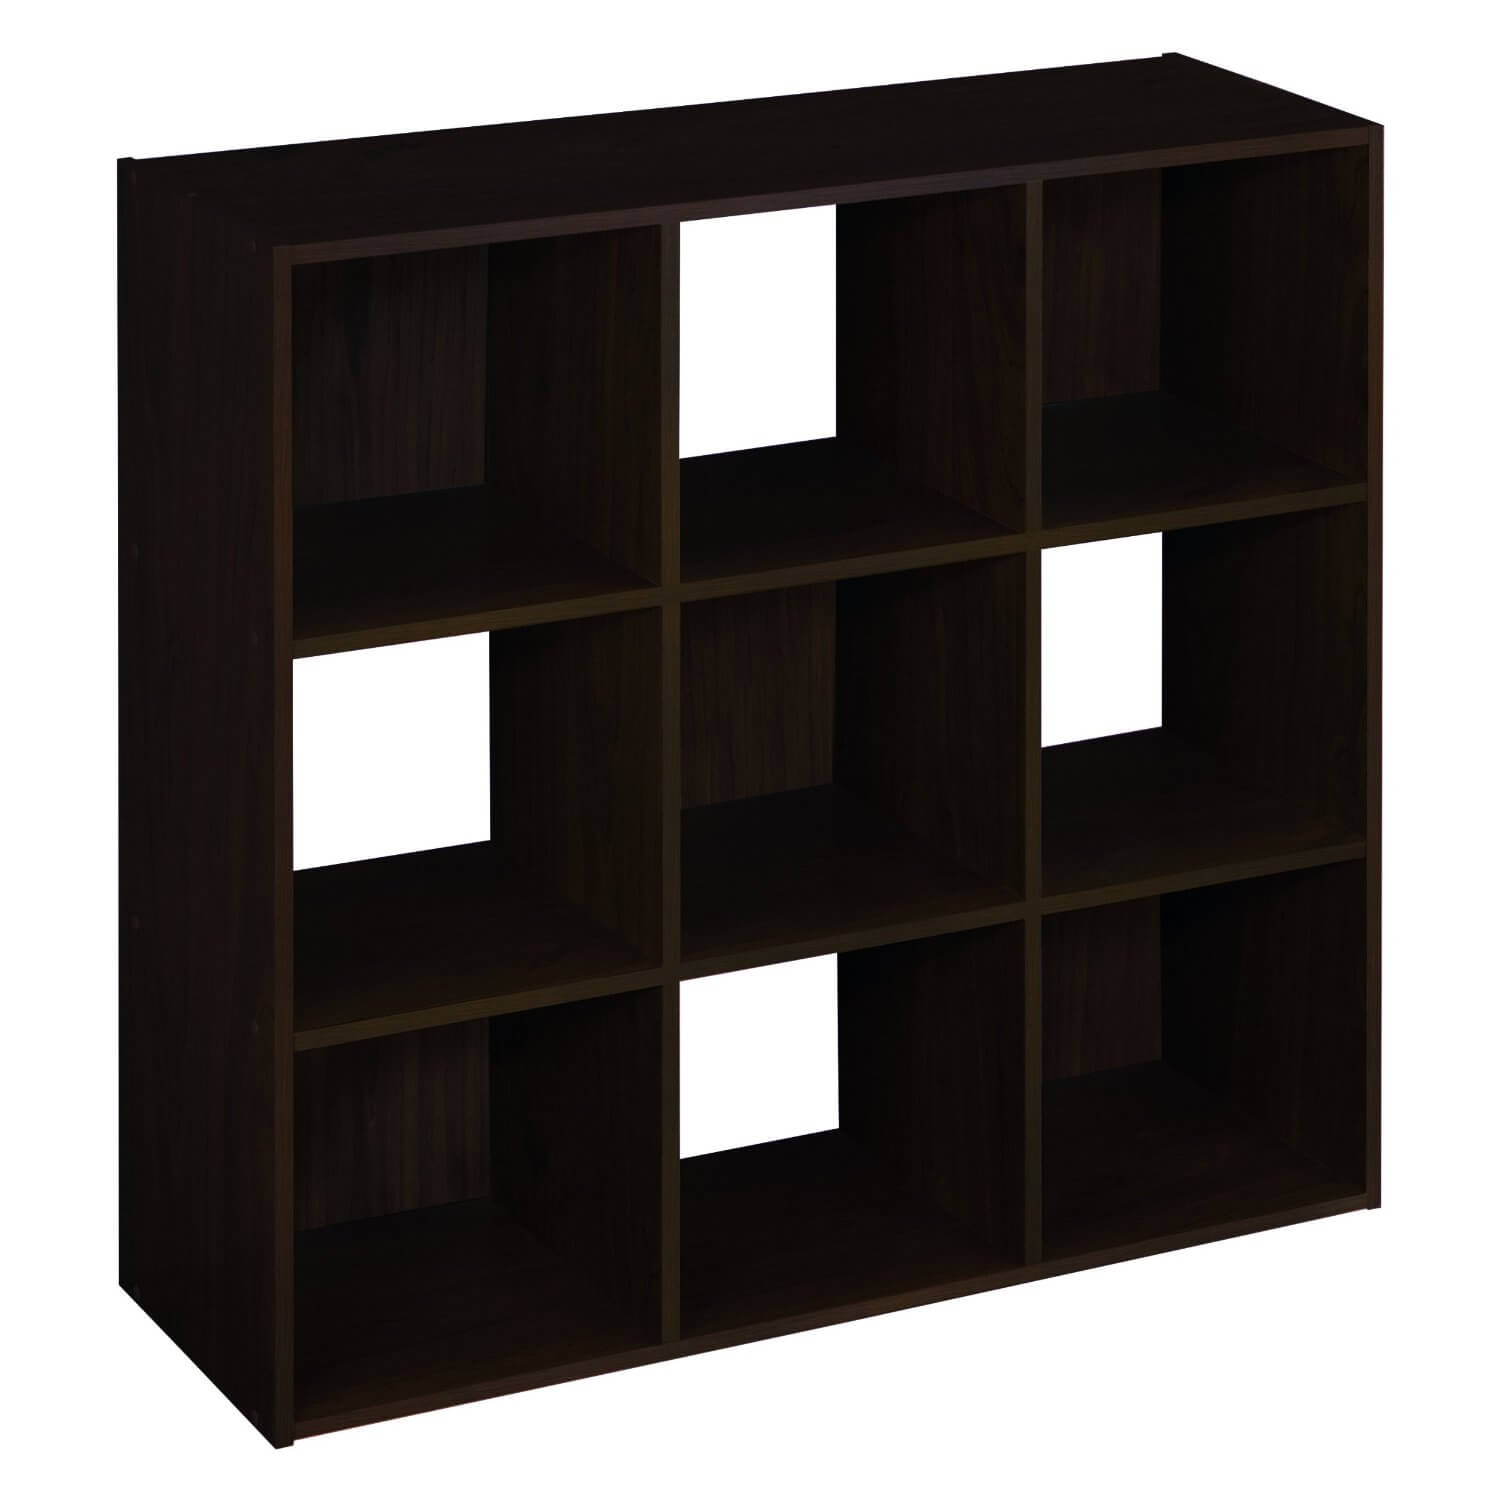 Here's another simple 9-cube shelf with checkered pattern achieved with alternating which sections have a back.